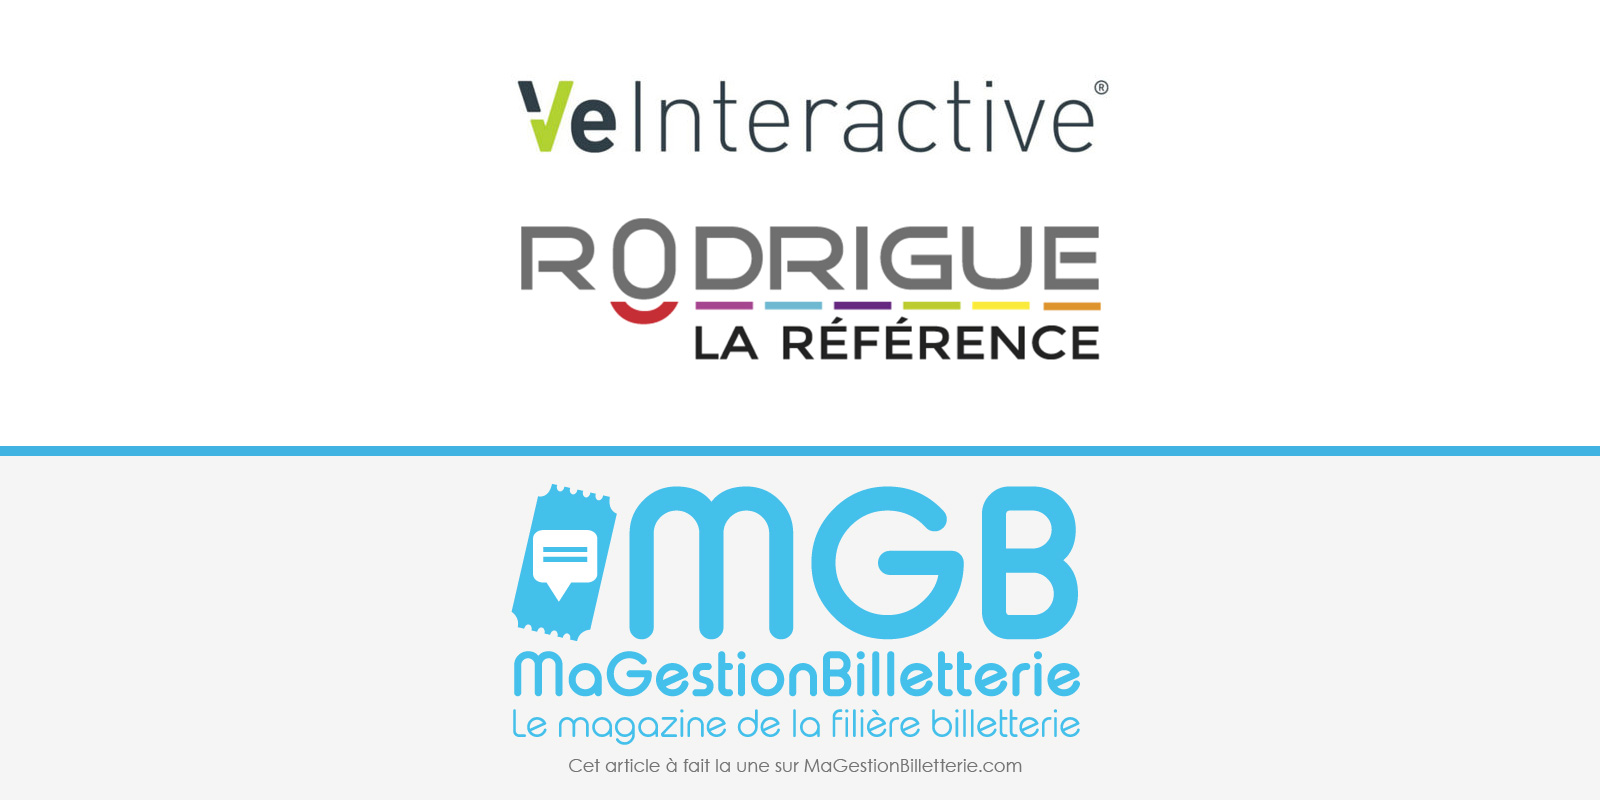 ve-interactive-rodrigue-une5